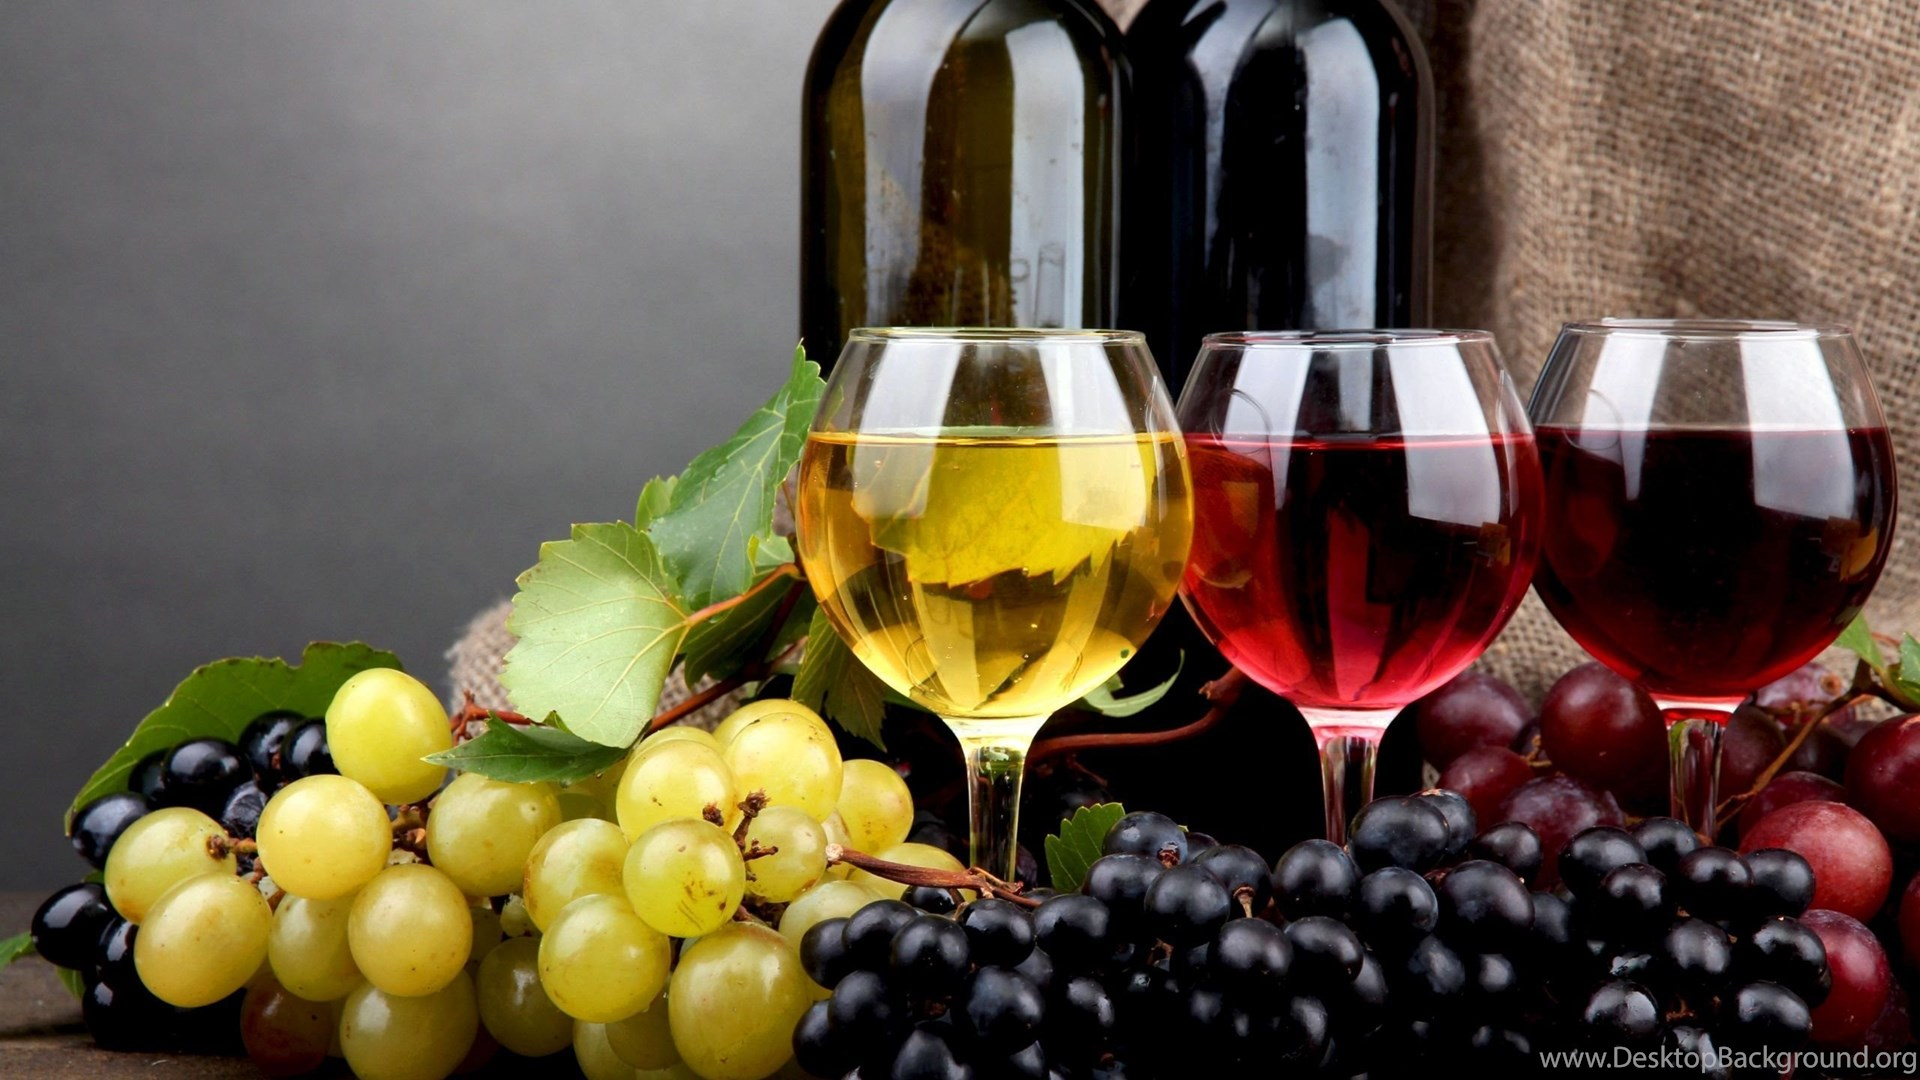 15077_wine-computer-wallpapers-desktop-backgrounds_2560x1600_h